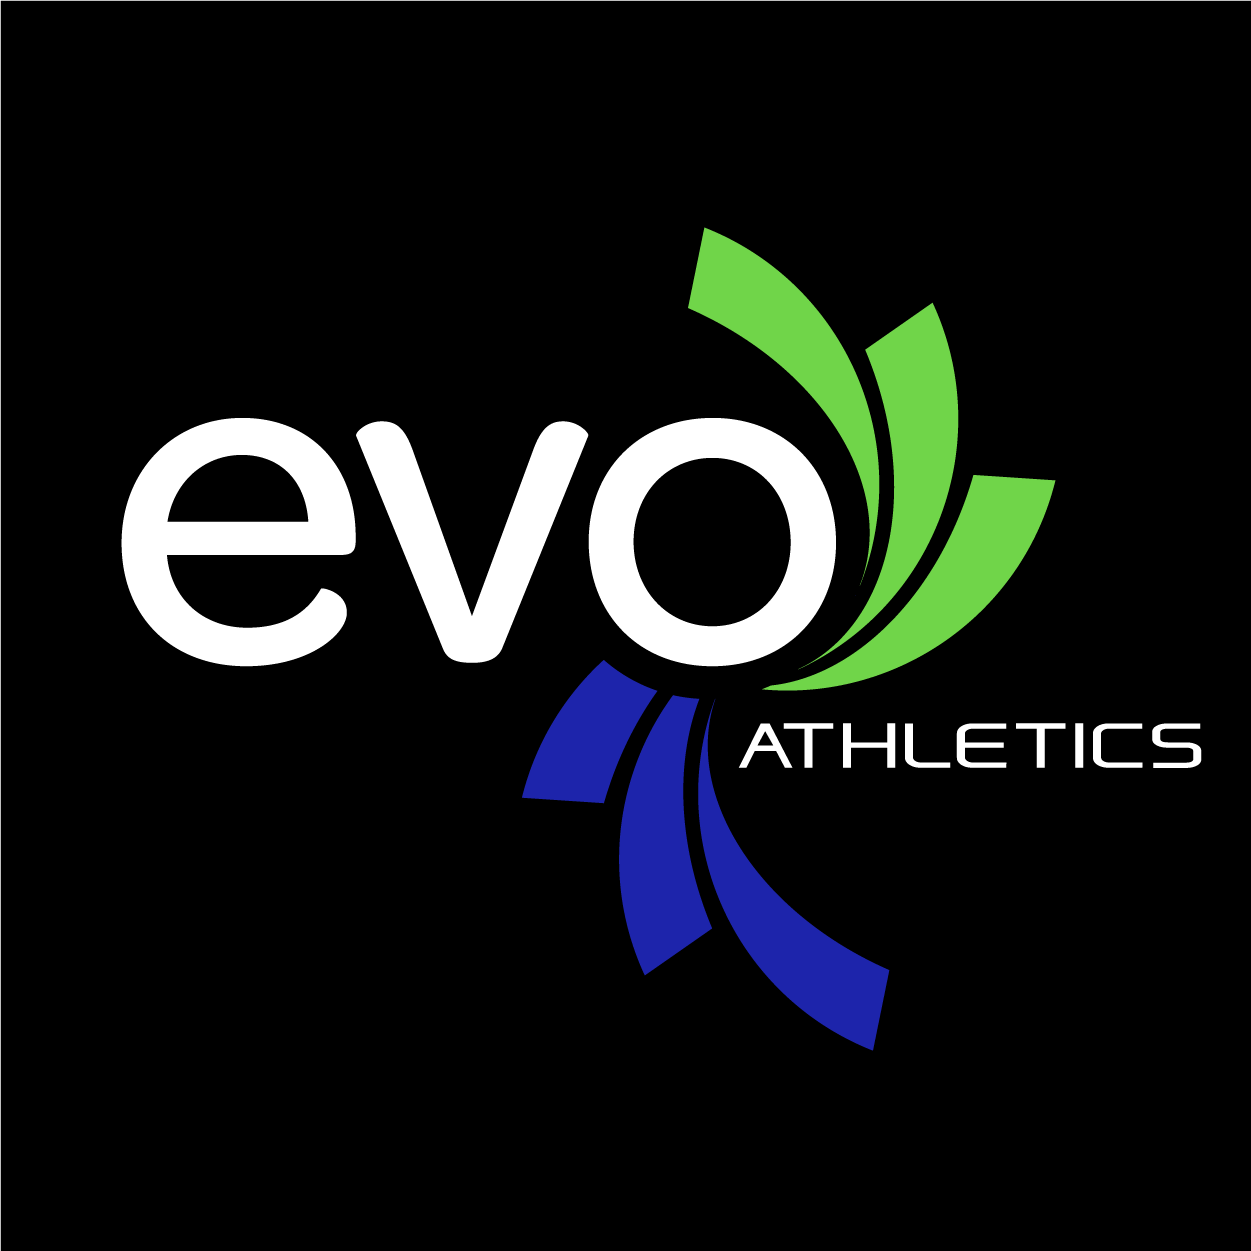 evo athletics